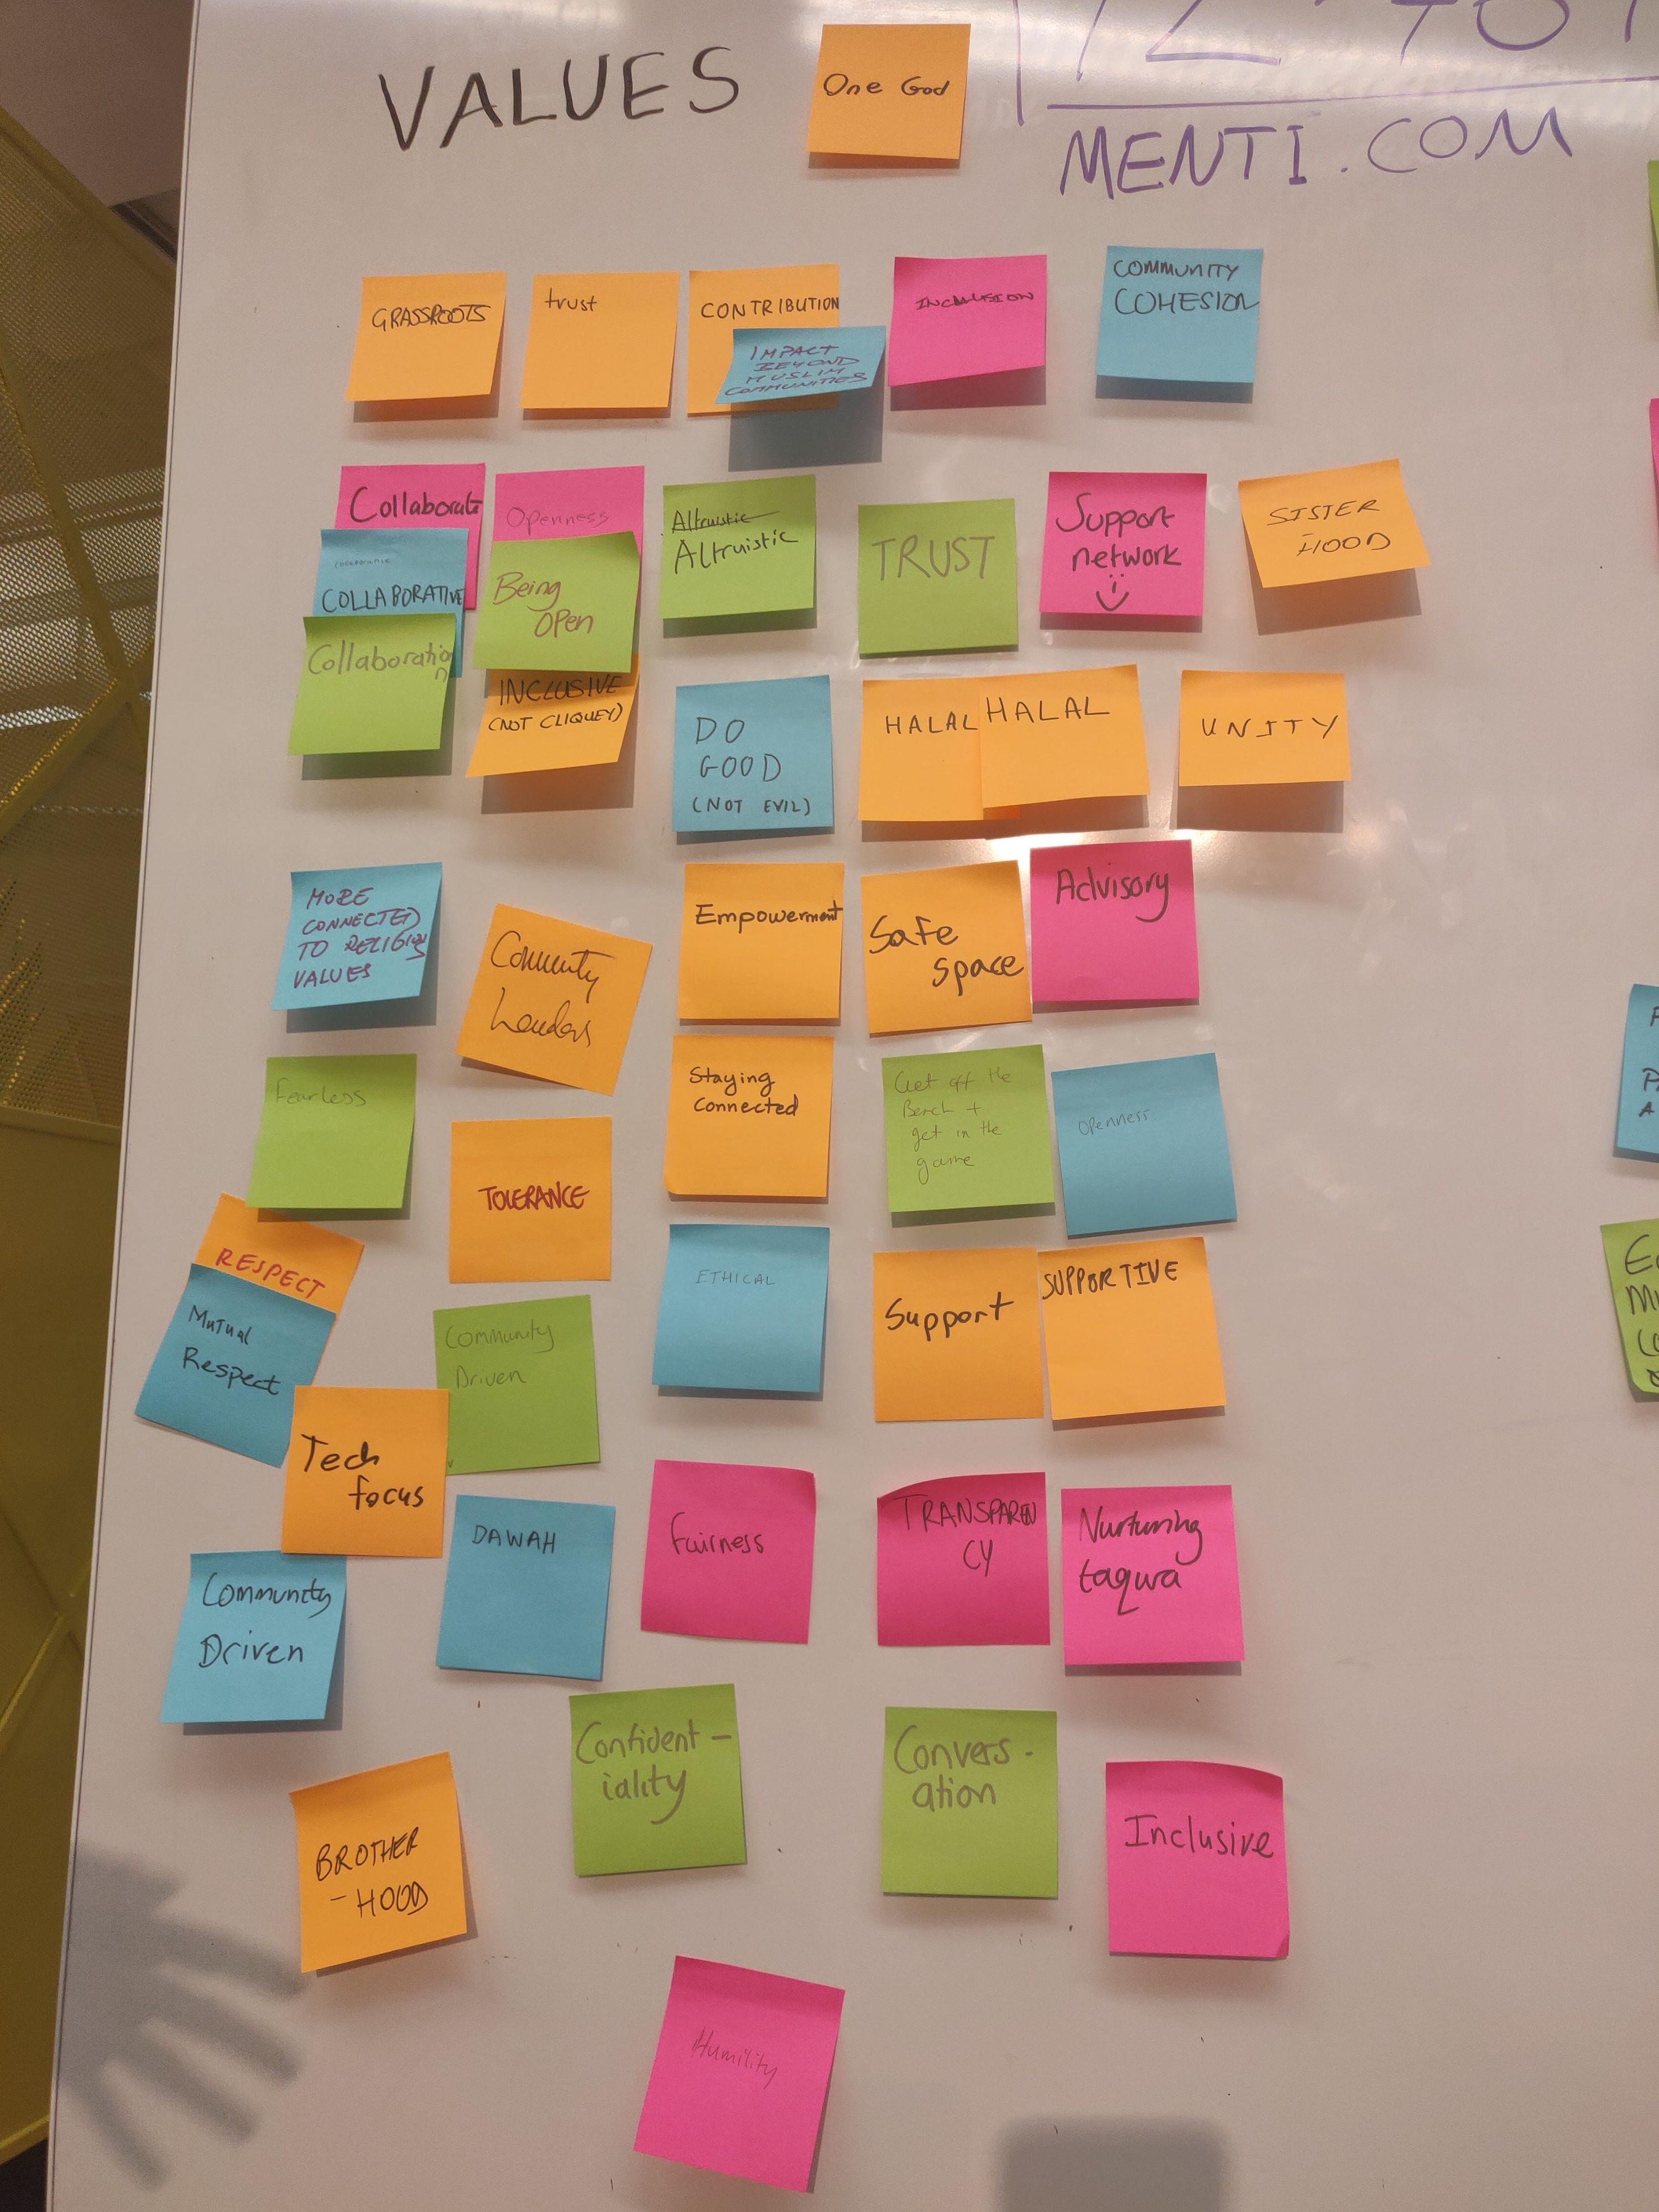 a picture with some of the values written out on sticky notes from the community like inclusive, halal, safe space